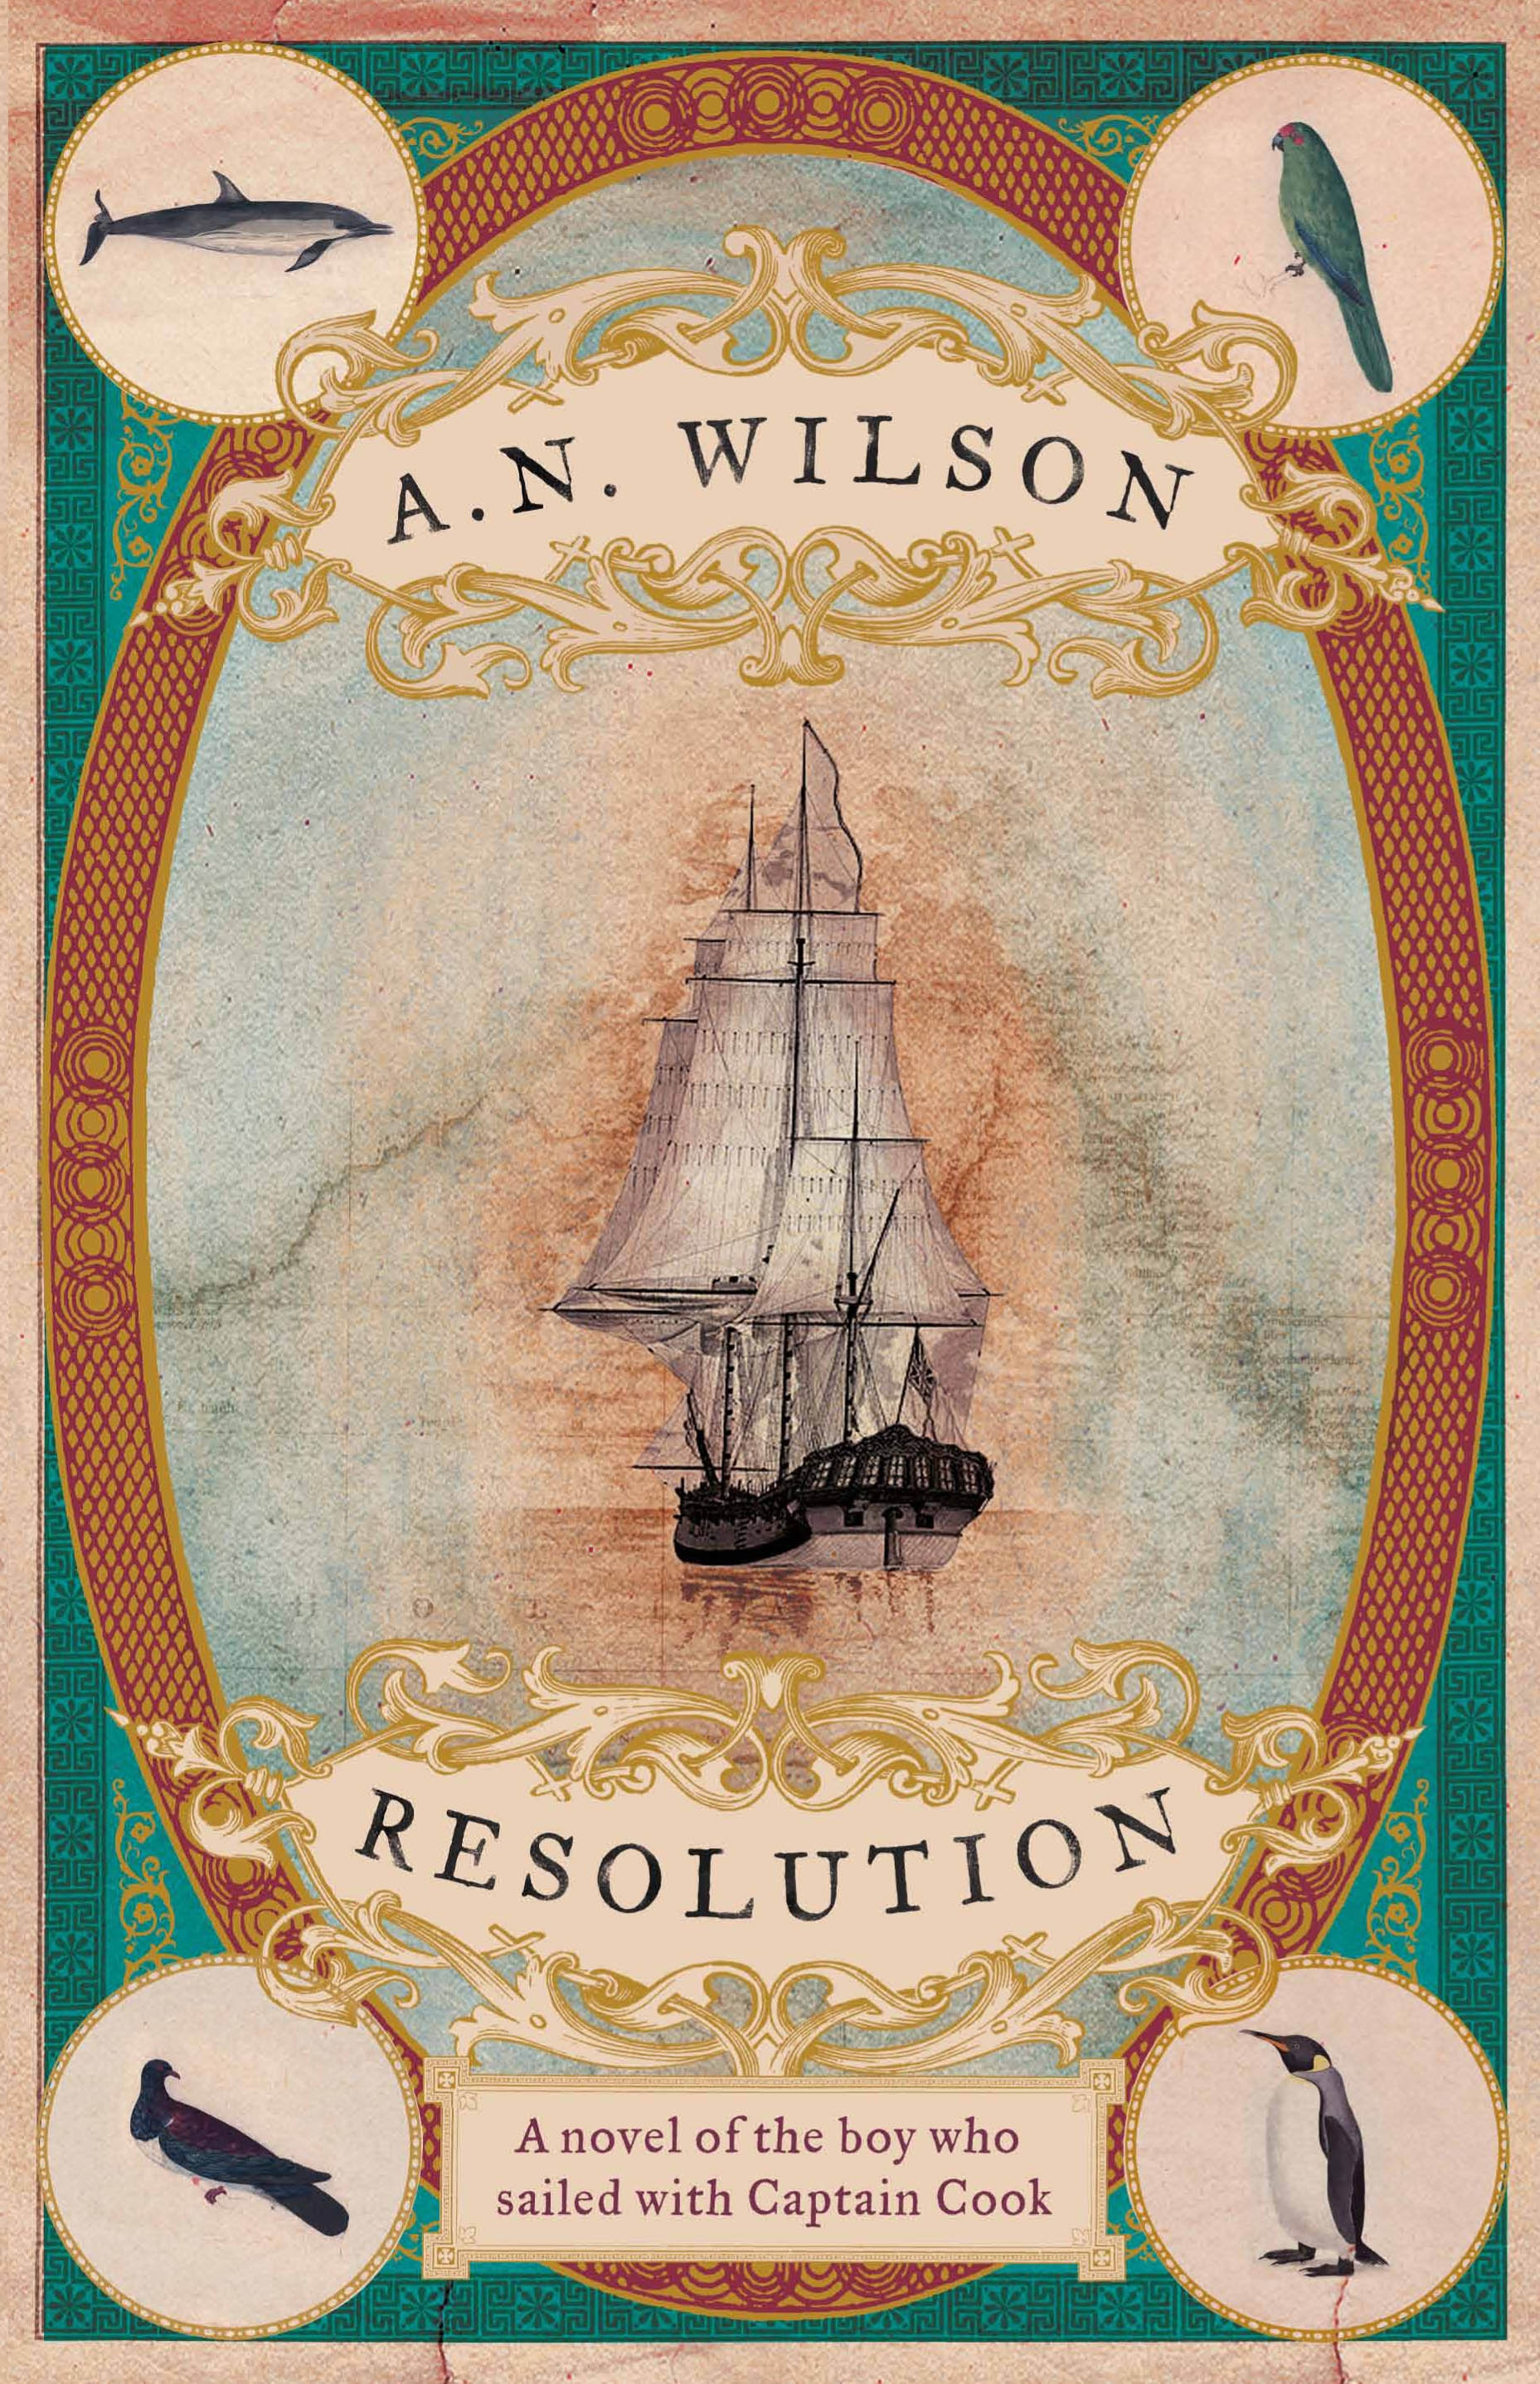 A. N. Wilson – Resolution (book cover illustration)